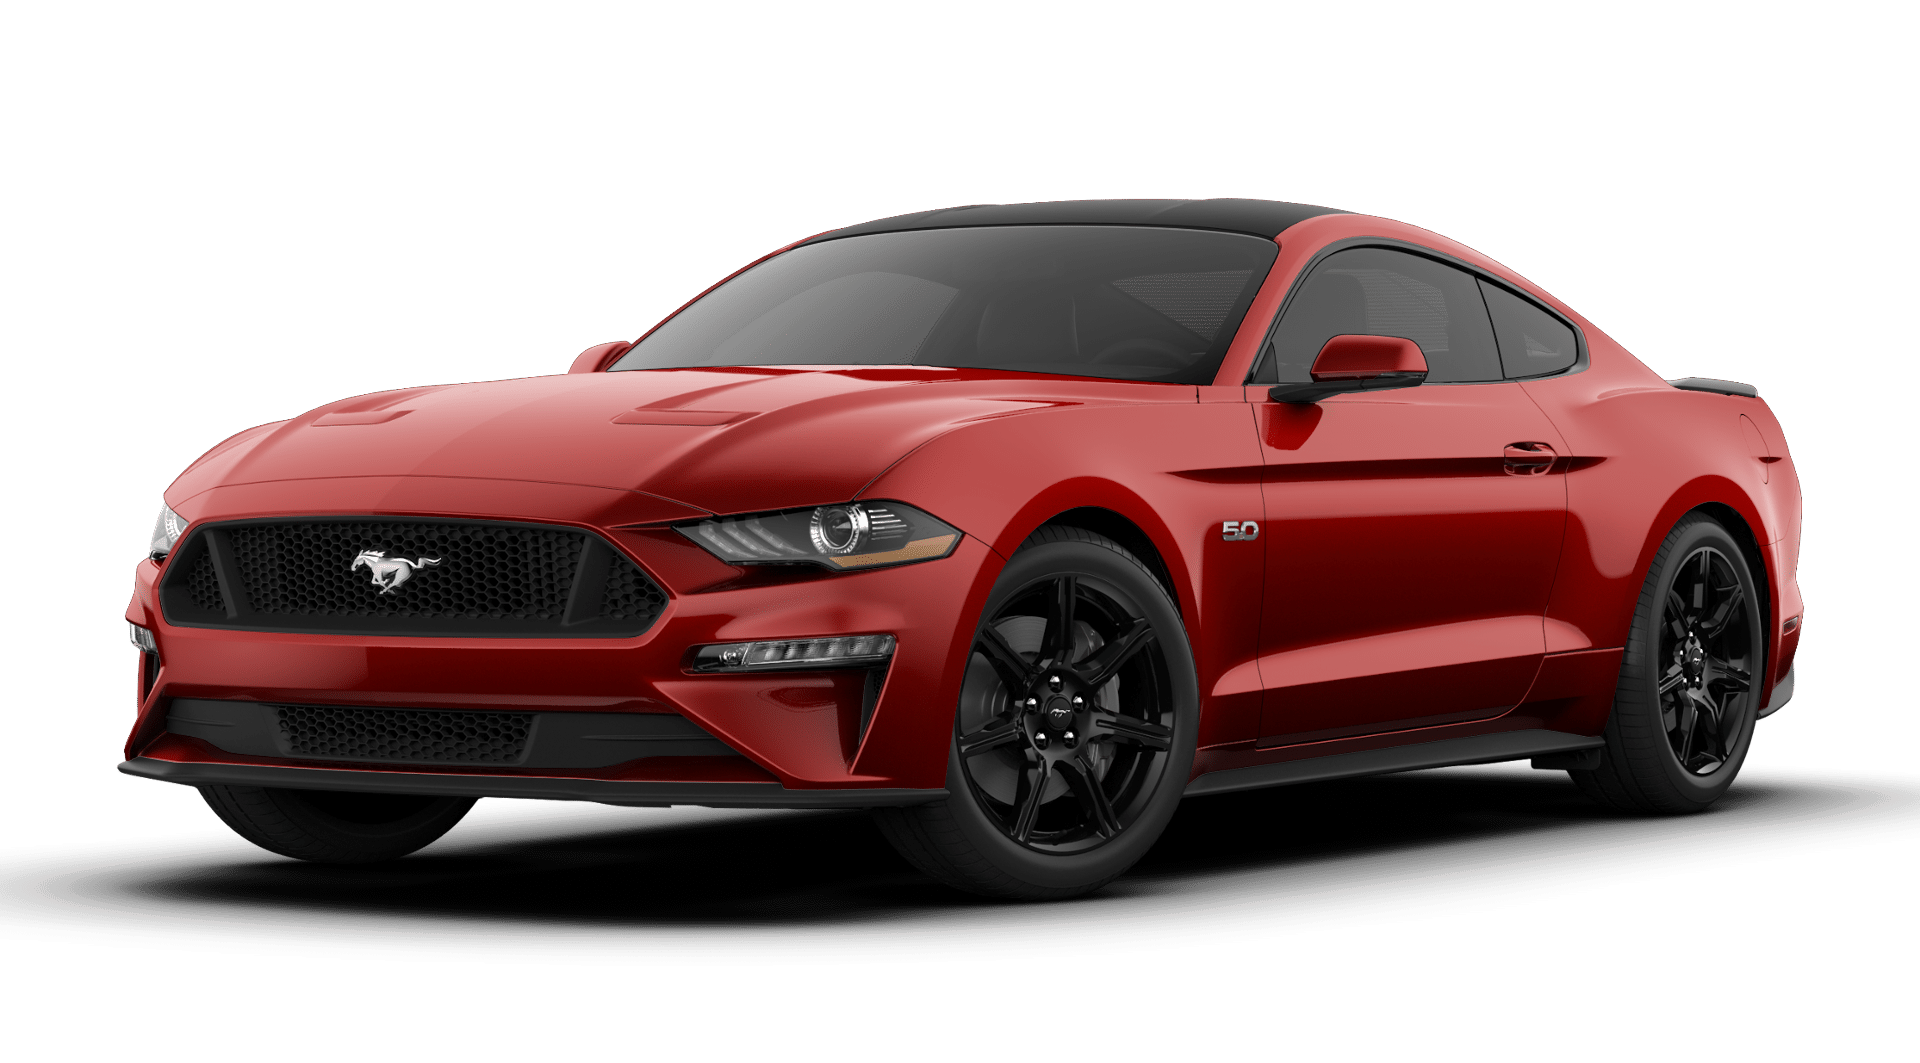 2019 Ford Mustang GT Premium Ruby Red Metallic Tinted Clearcoat